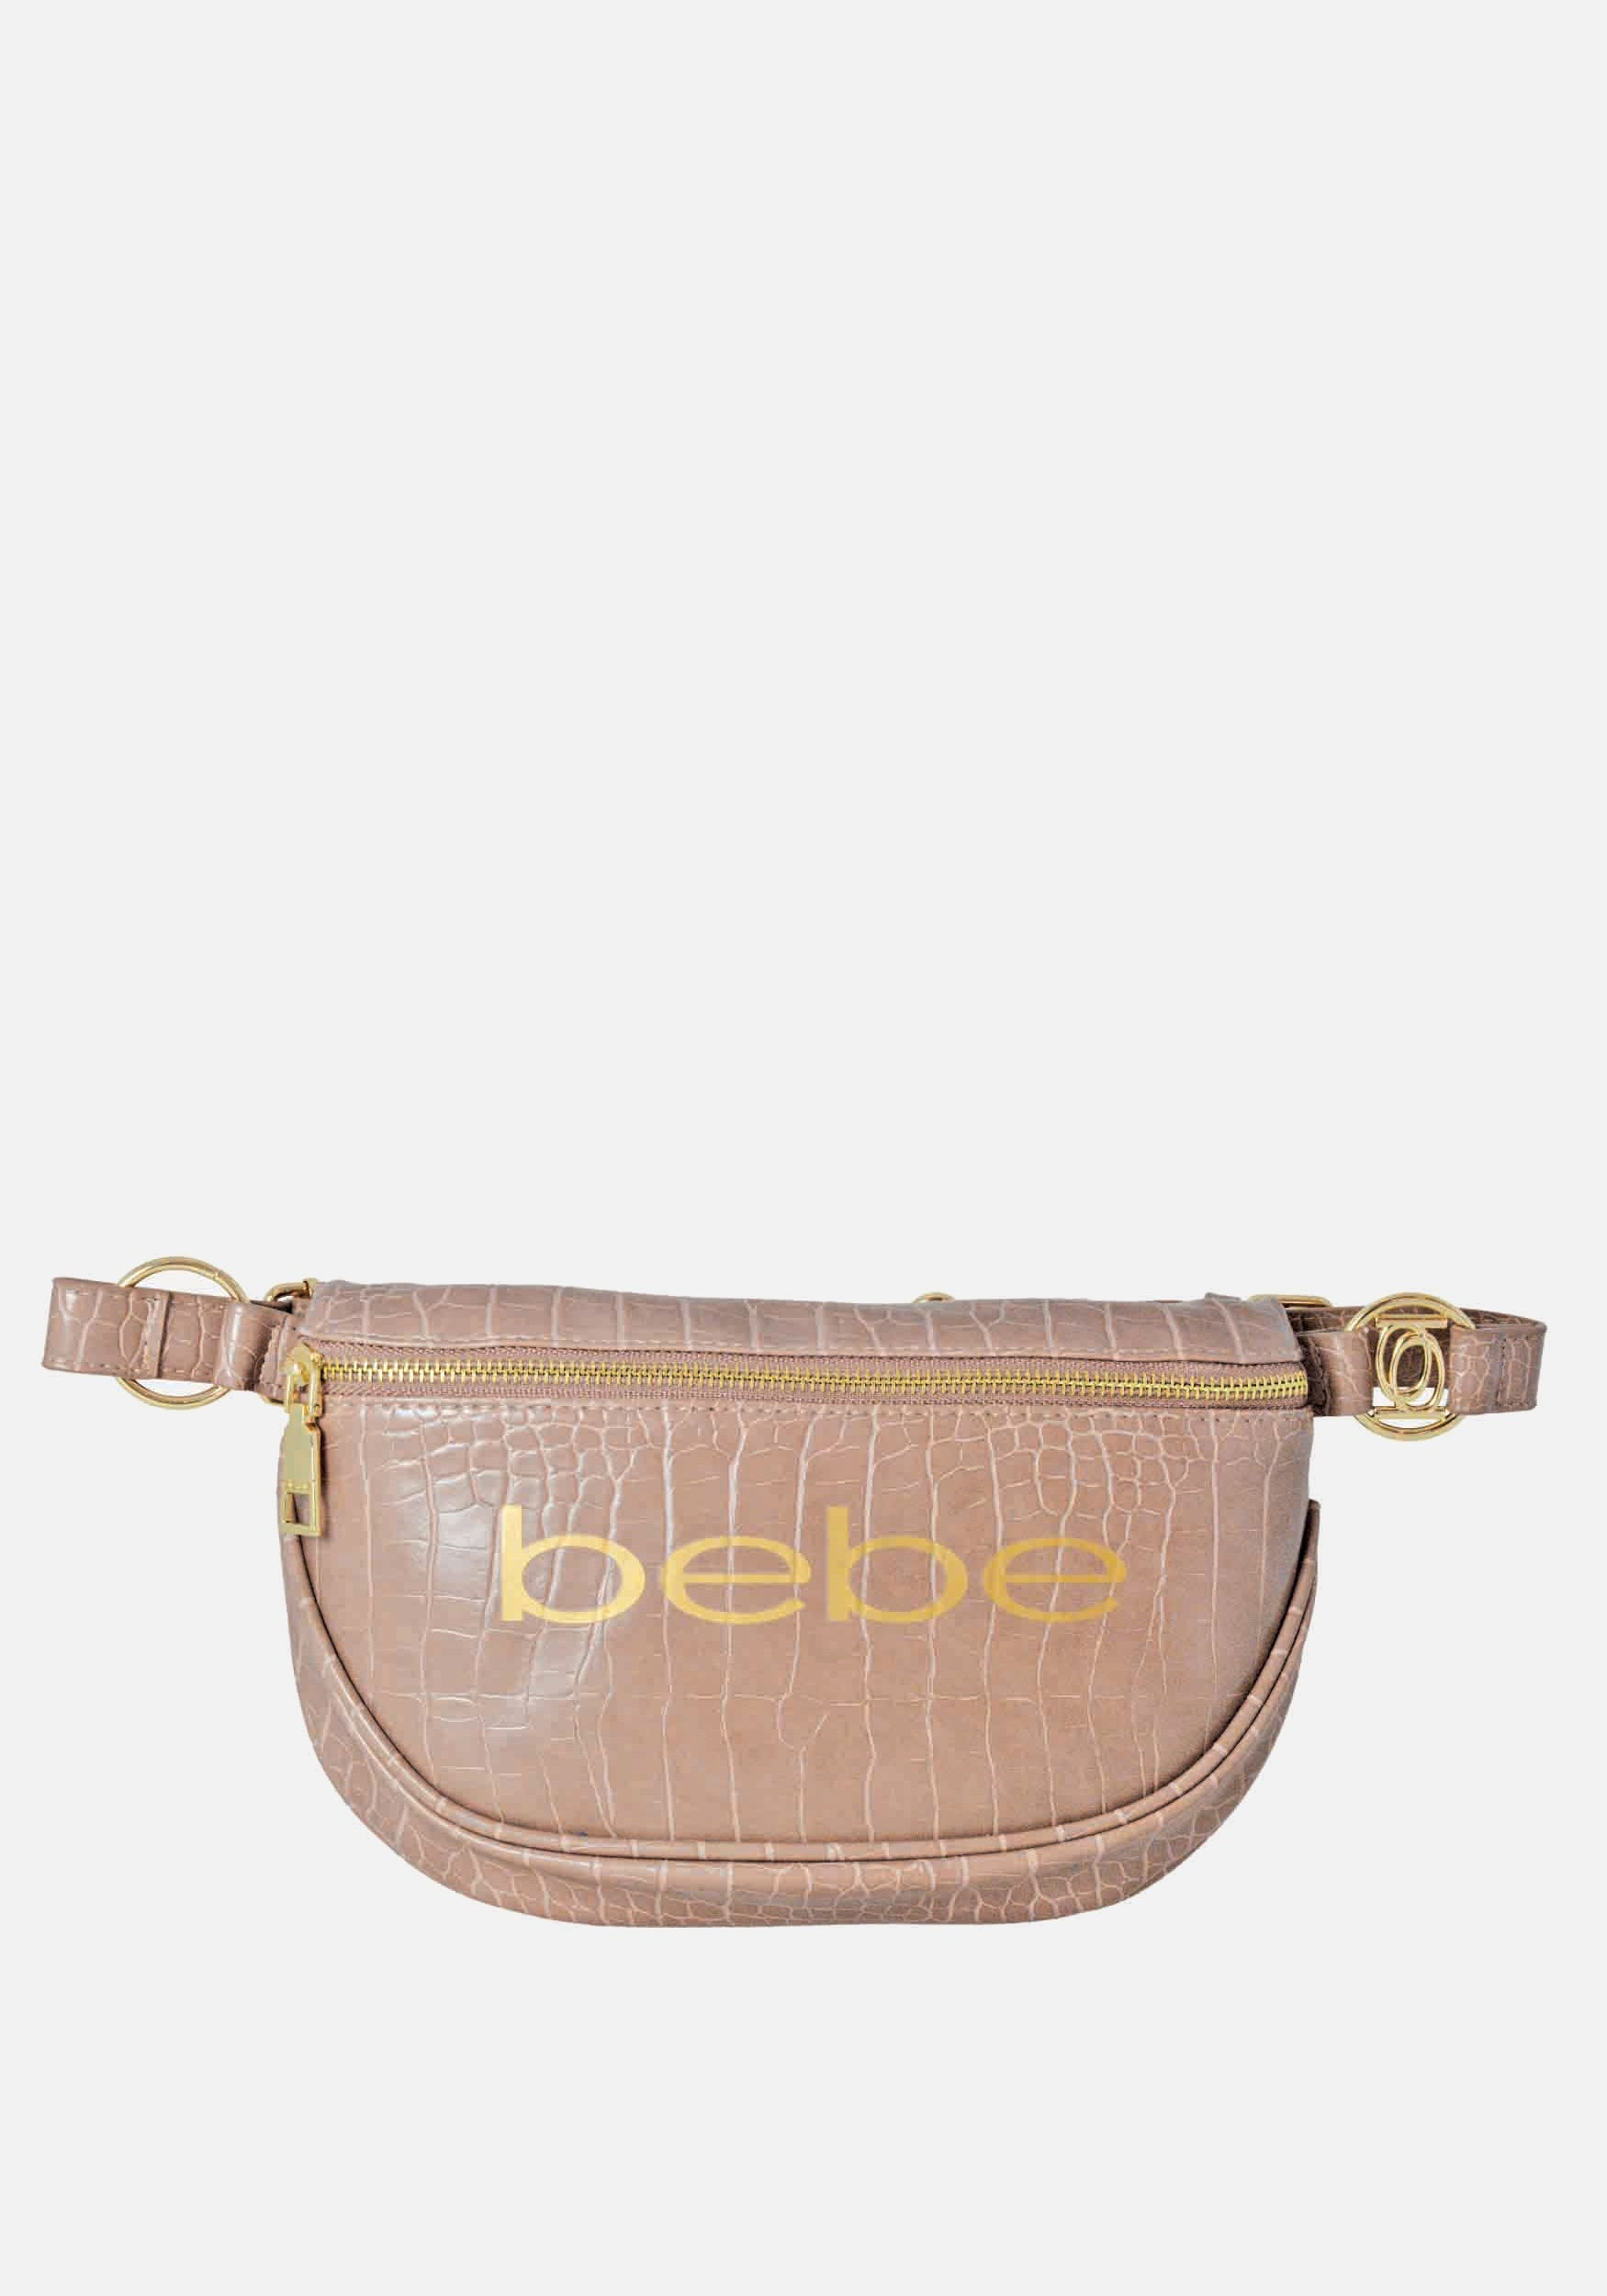 Bebe Women's Josephine Croco Convertible Sling in Mink Polyester